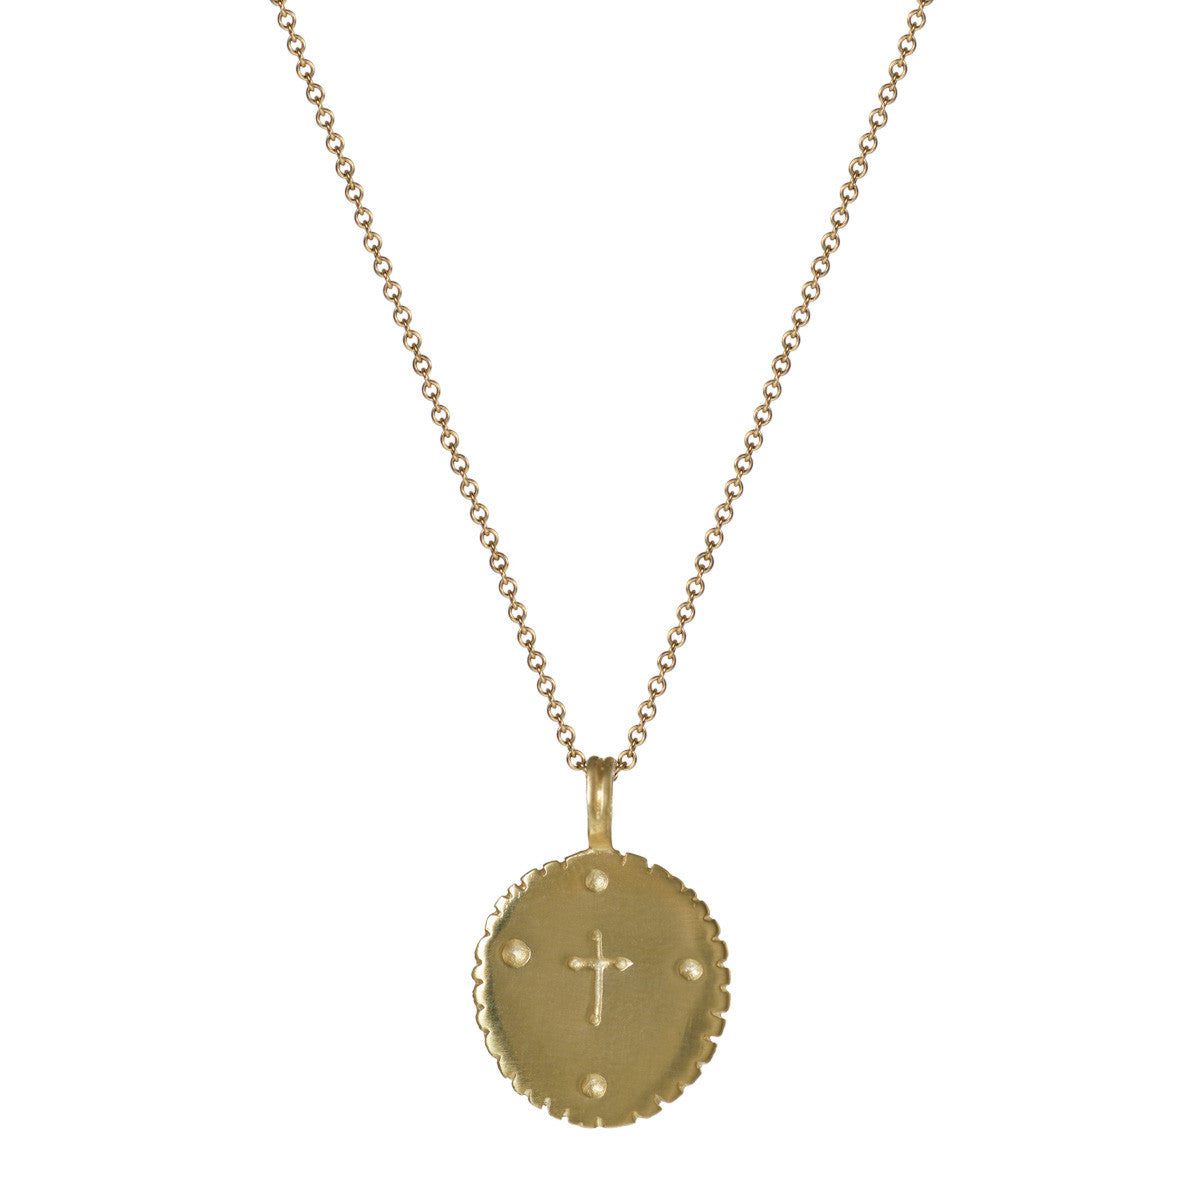 10K Gold Thin Cross Medal Pendant